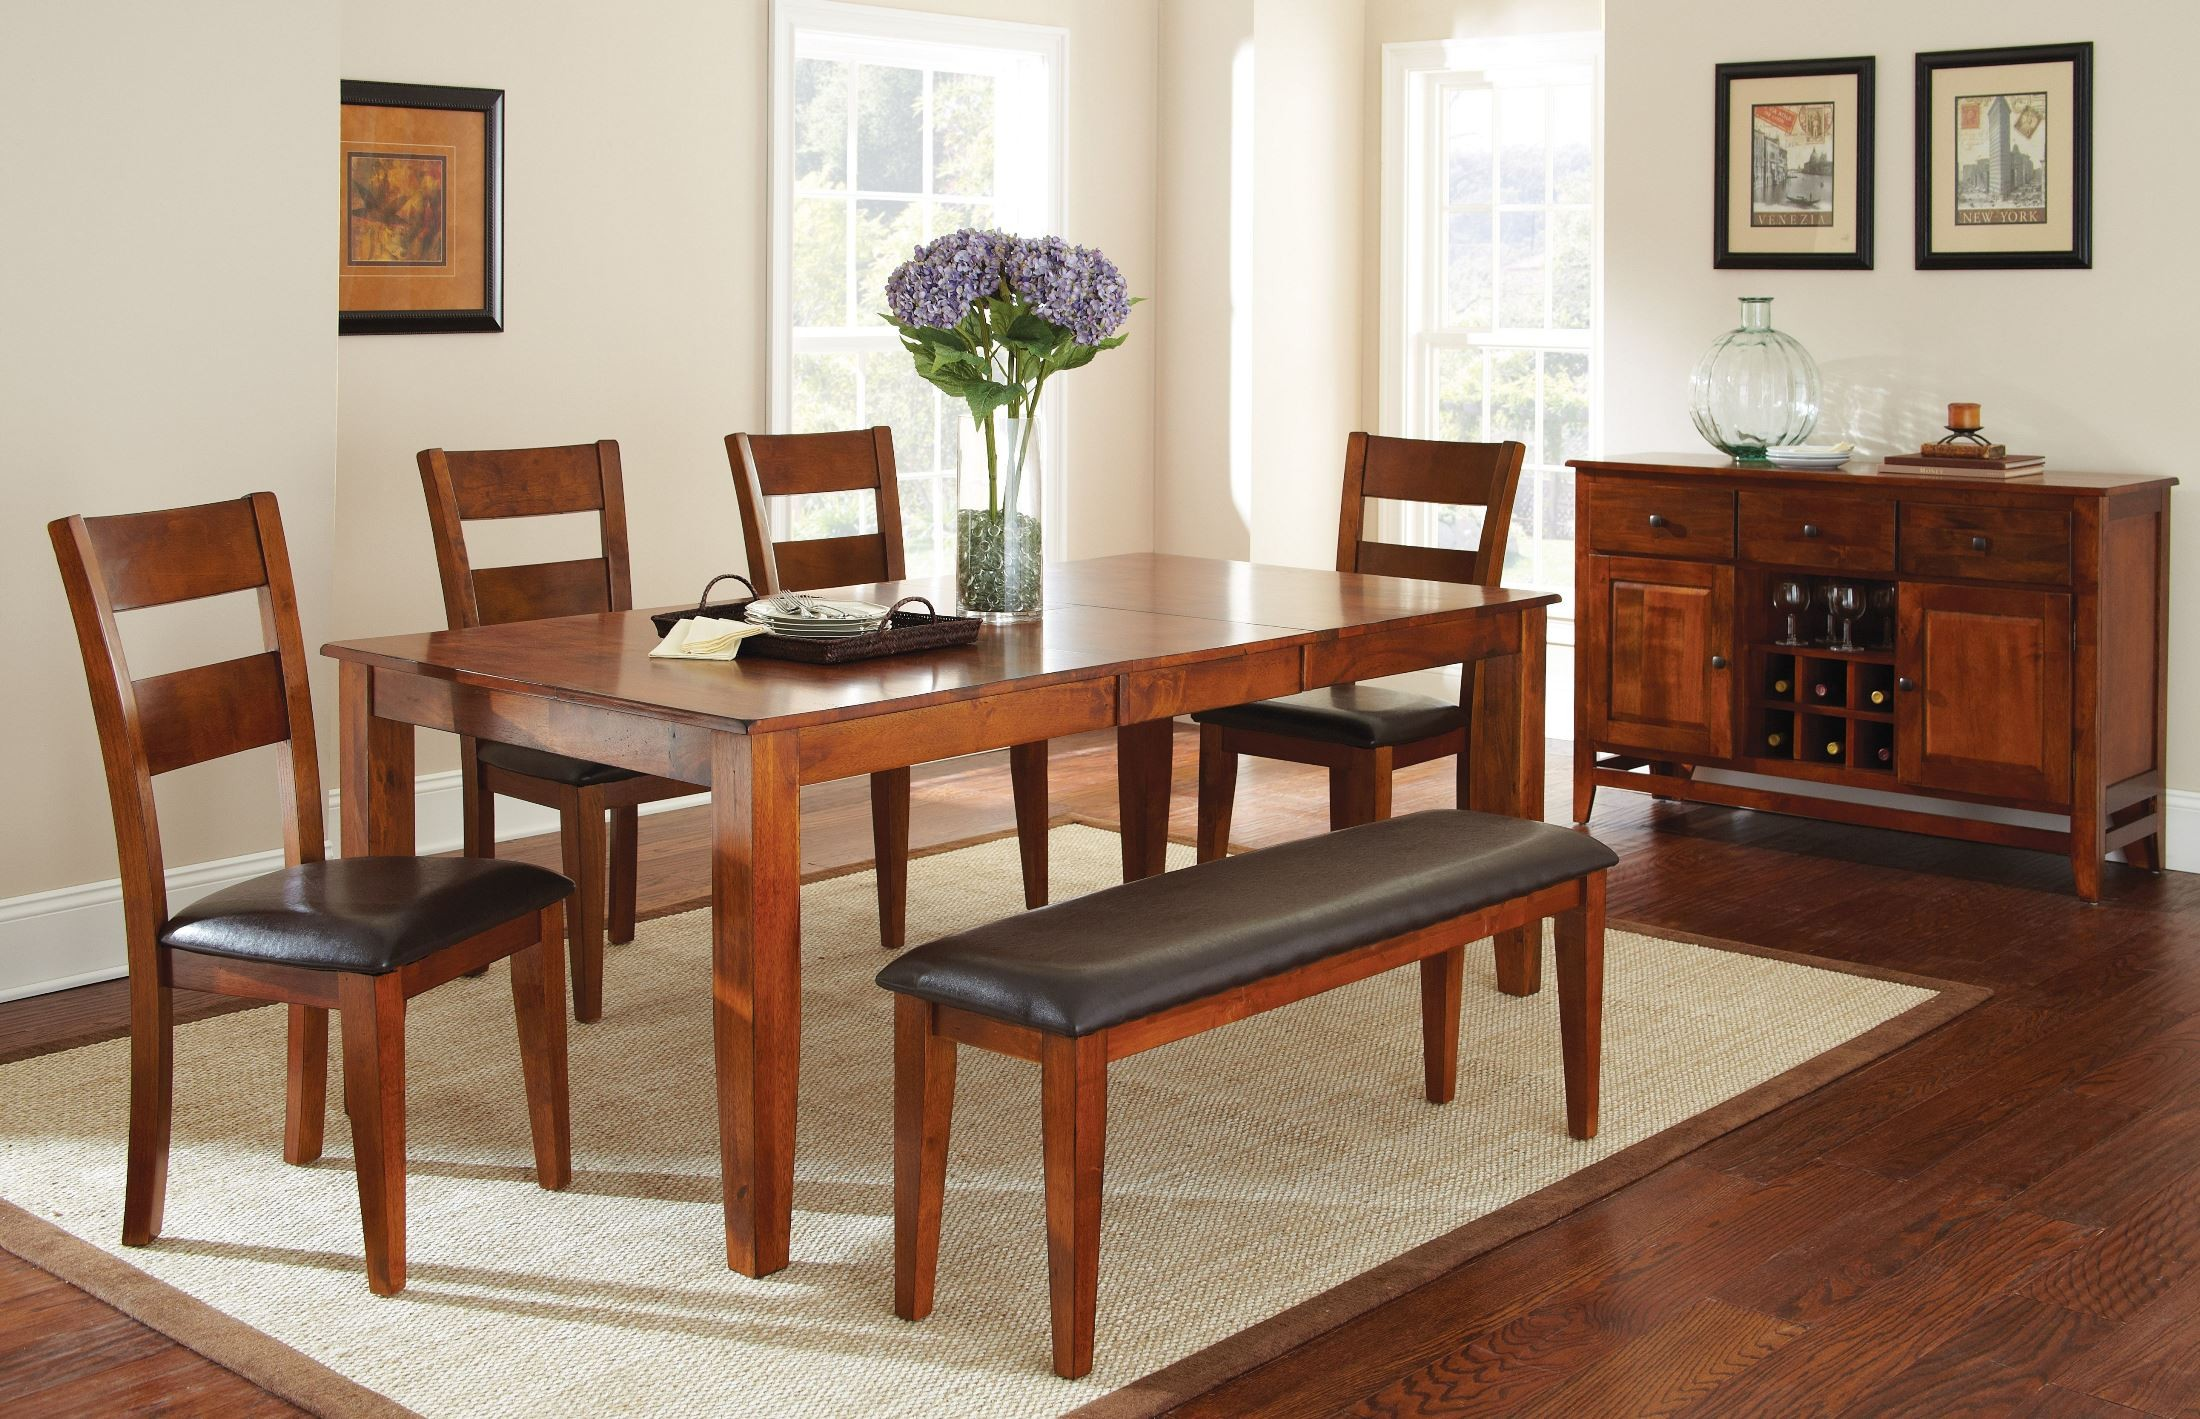 Mango Medium Brown Extendable Rectangular Dining Room Set From Steve . Full resolution‎  snapshot, nominally Width 2200 Height 1419 pixels, snapshot with #AB4F20.